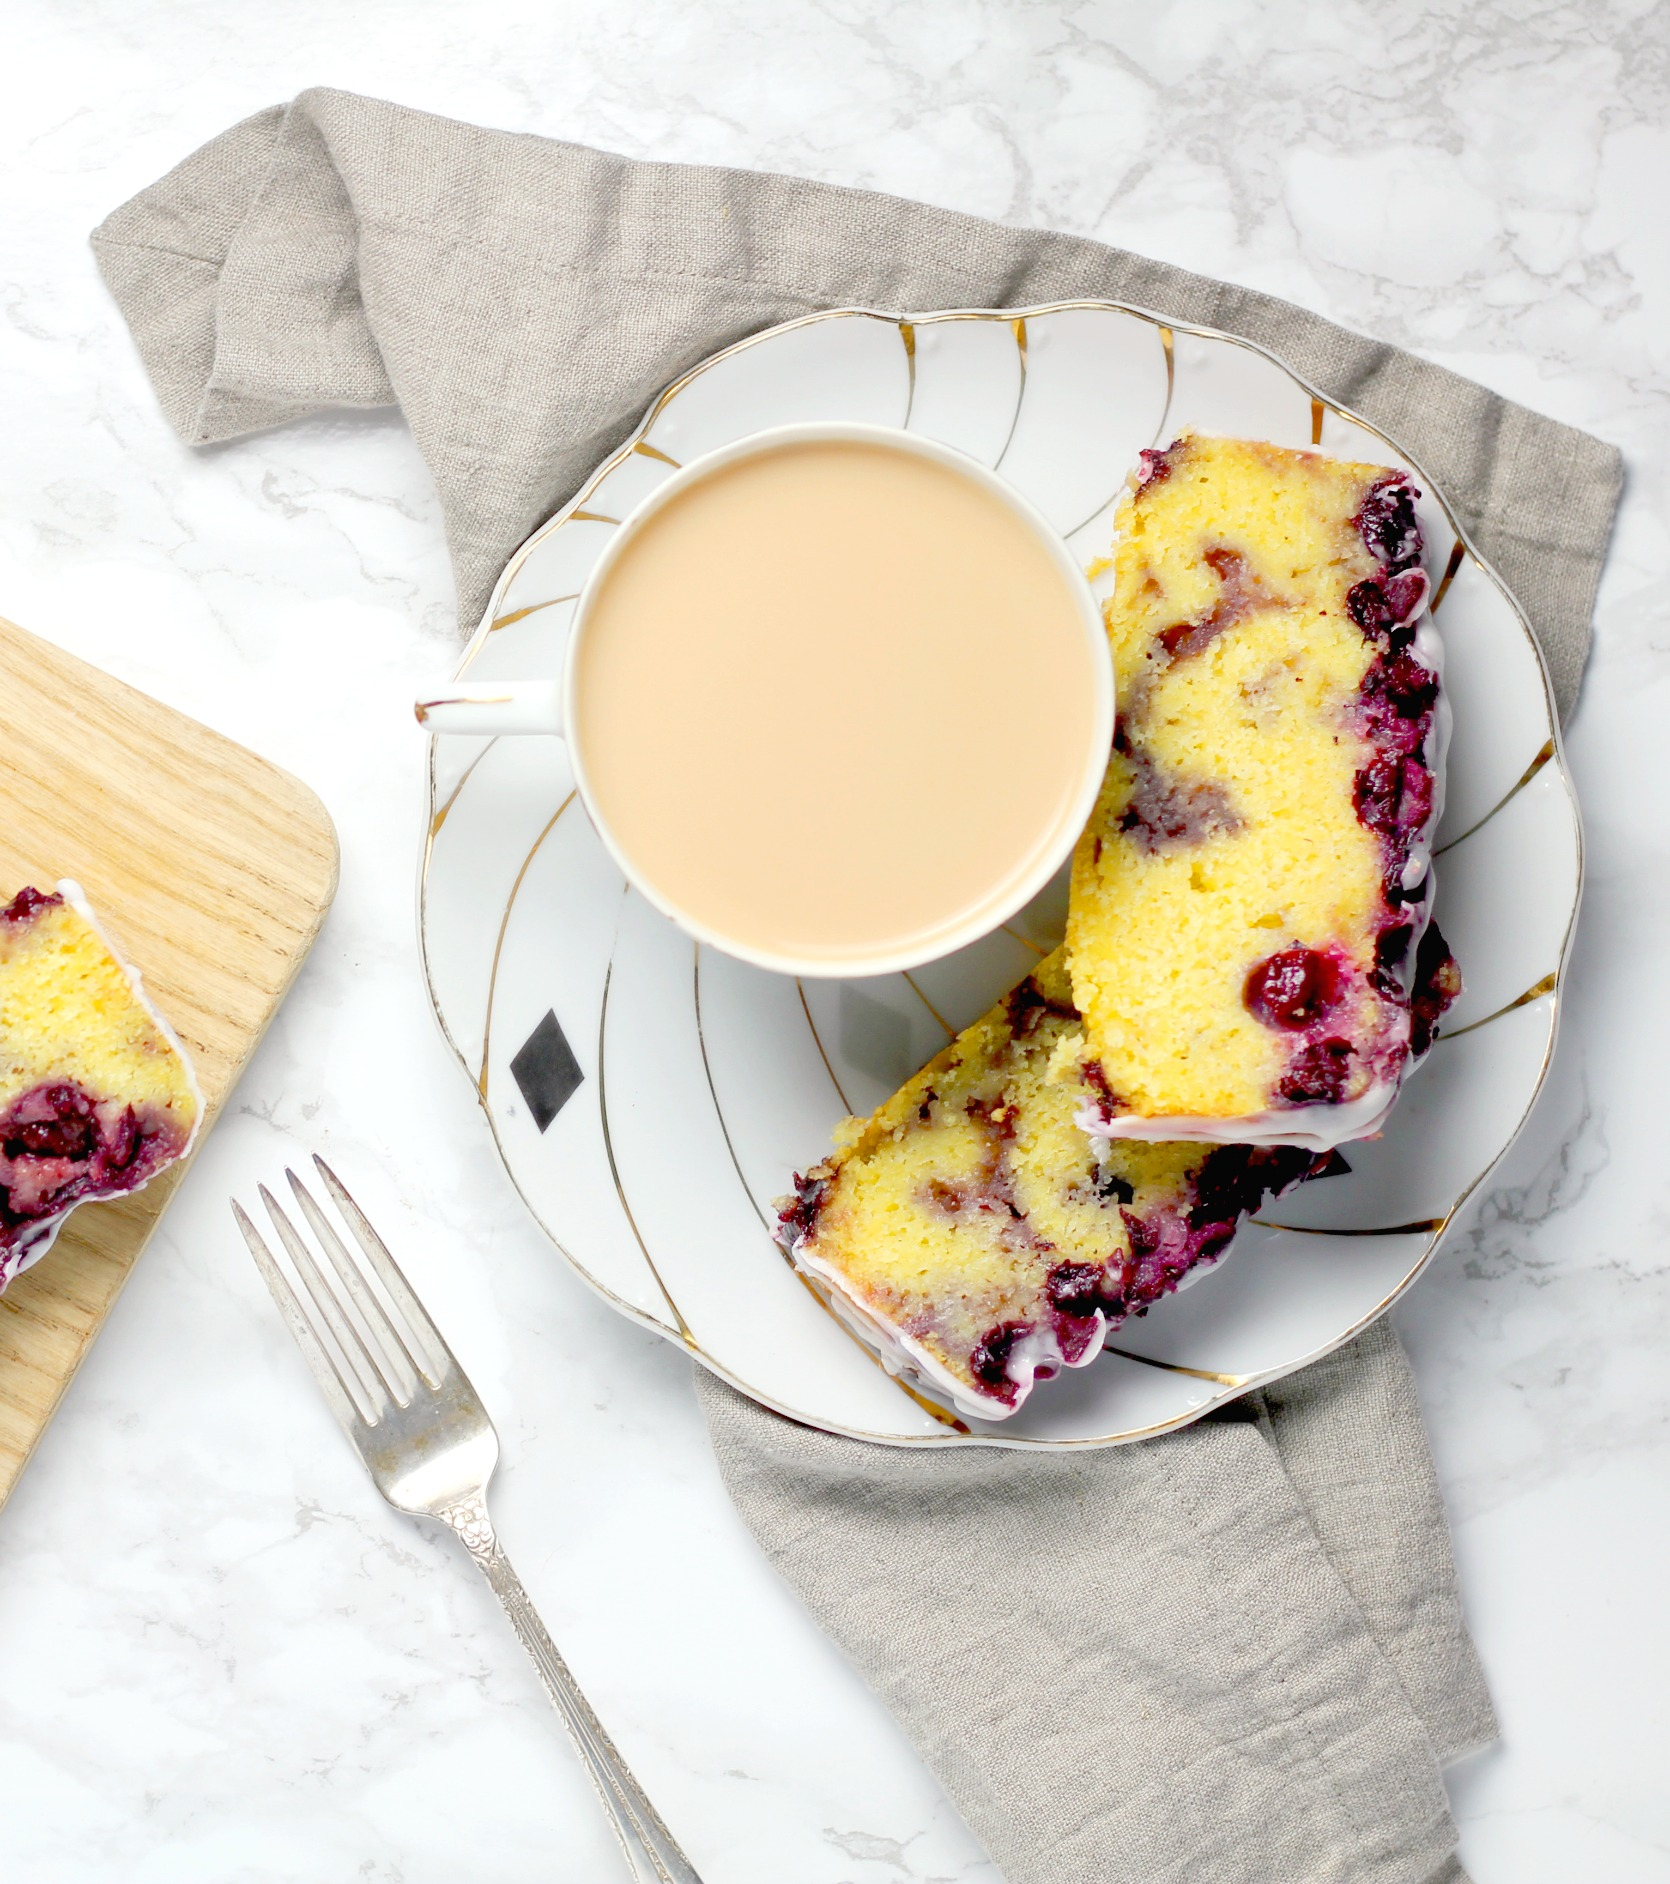 two slices of blueberry upside down lemon bread on a saucer with a cup of coffee